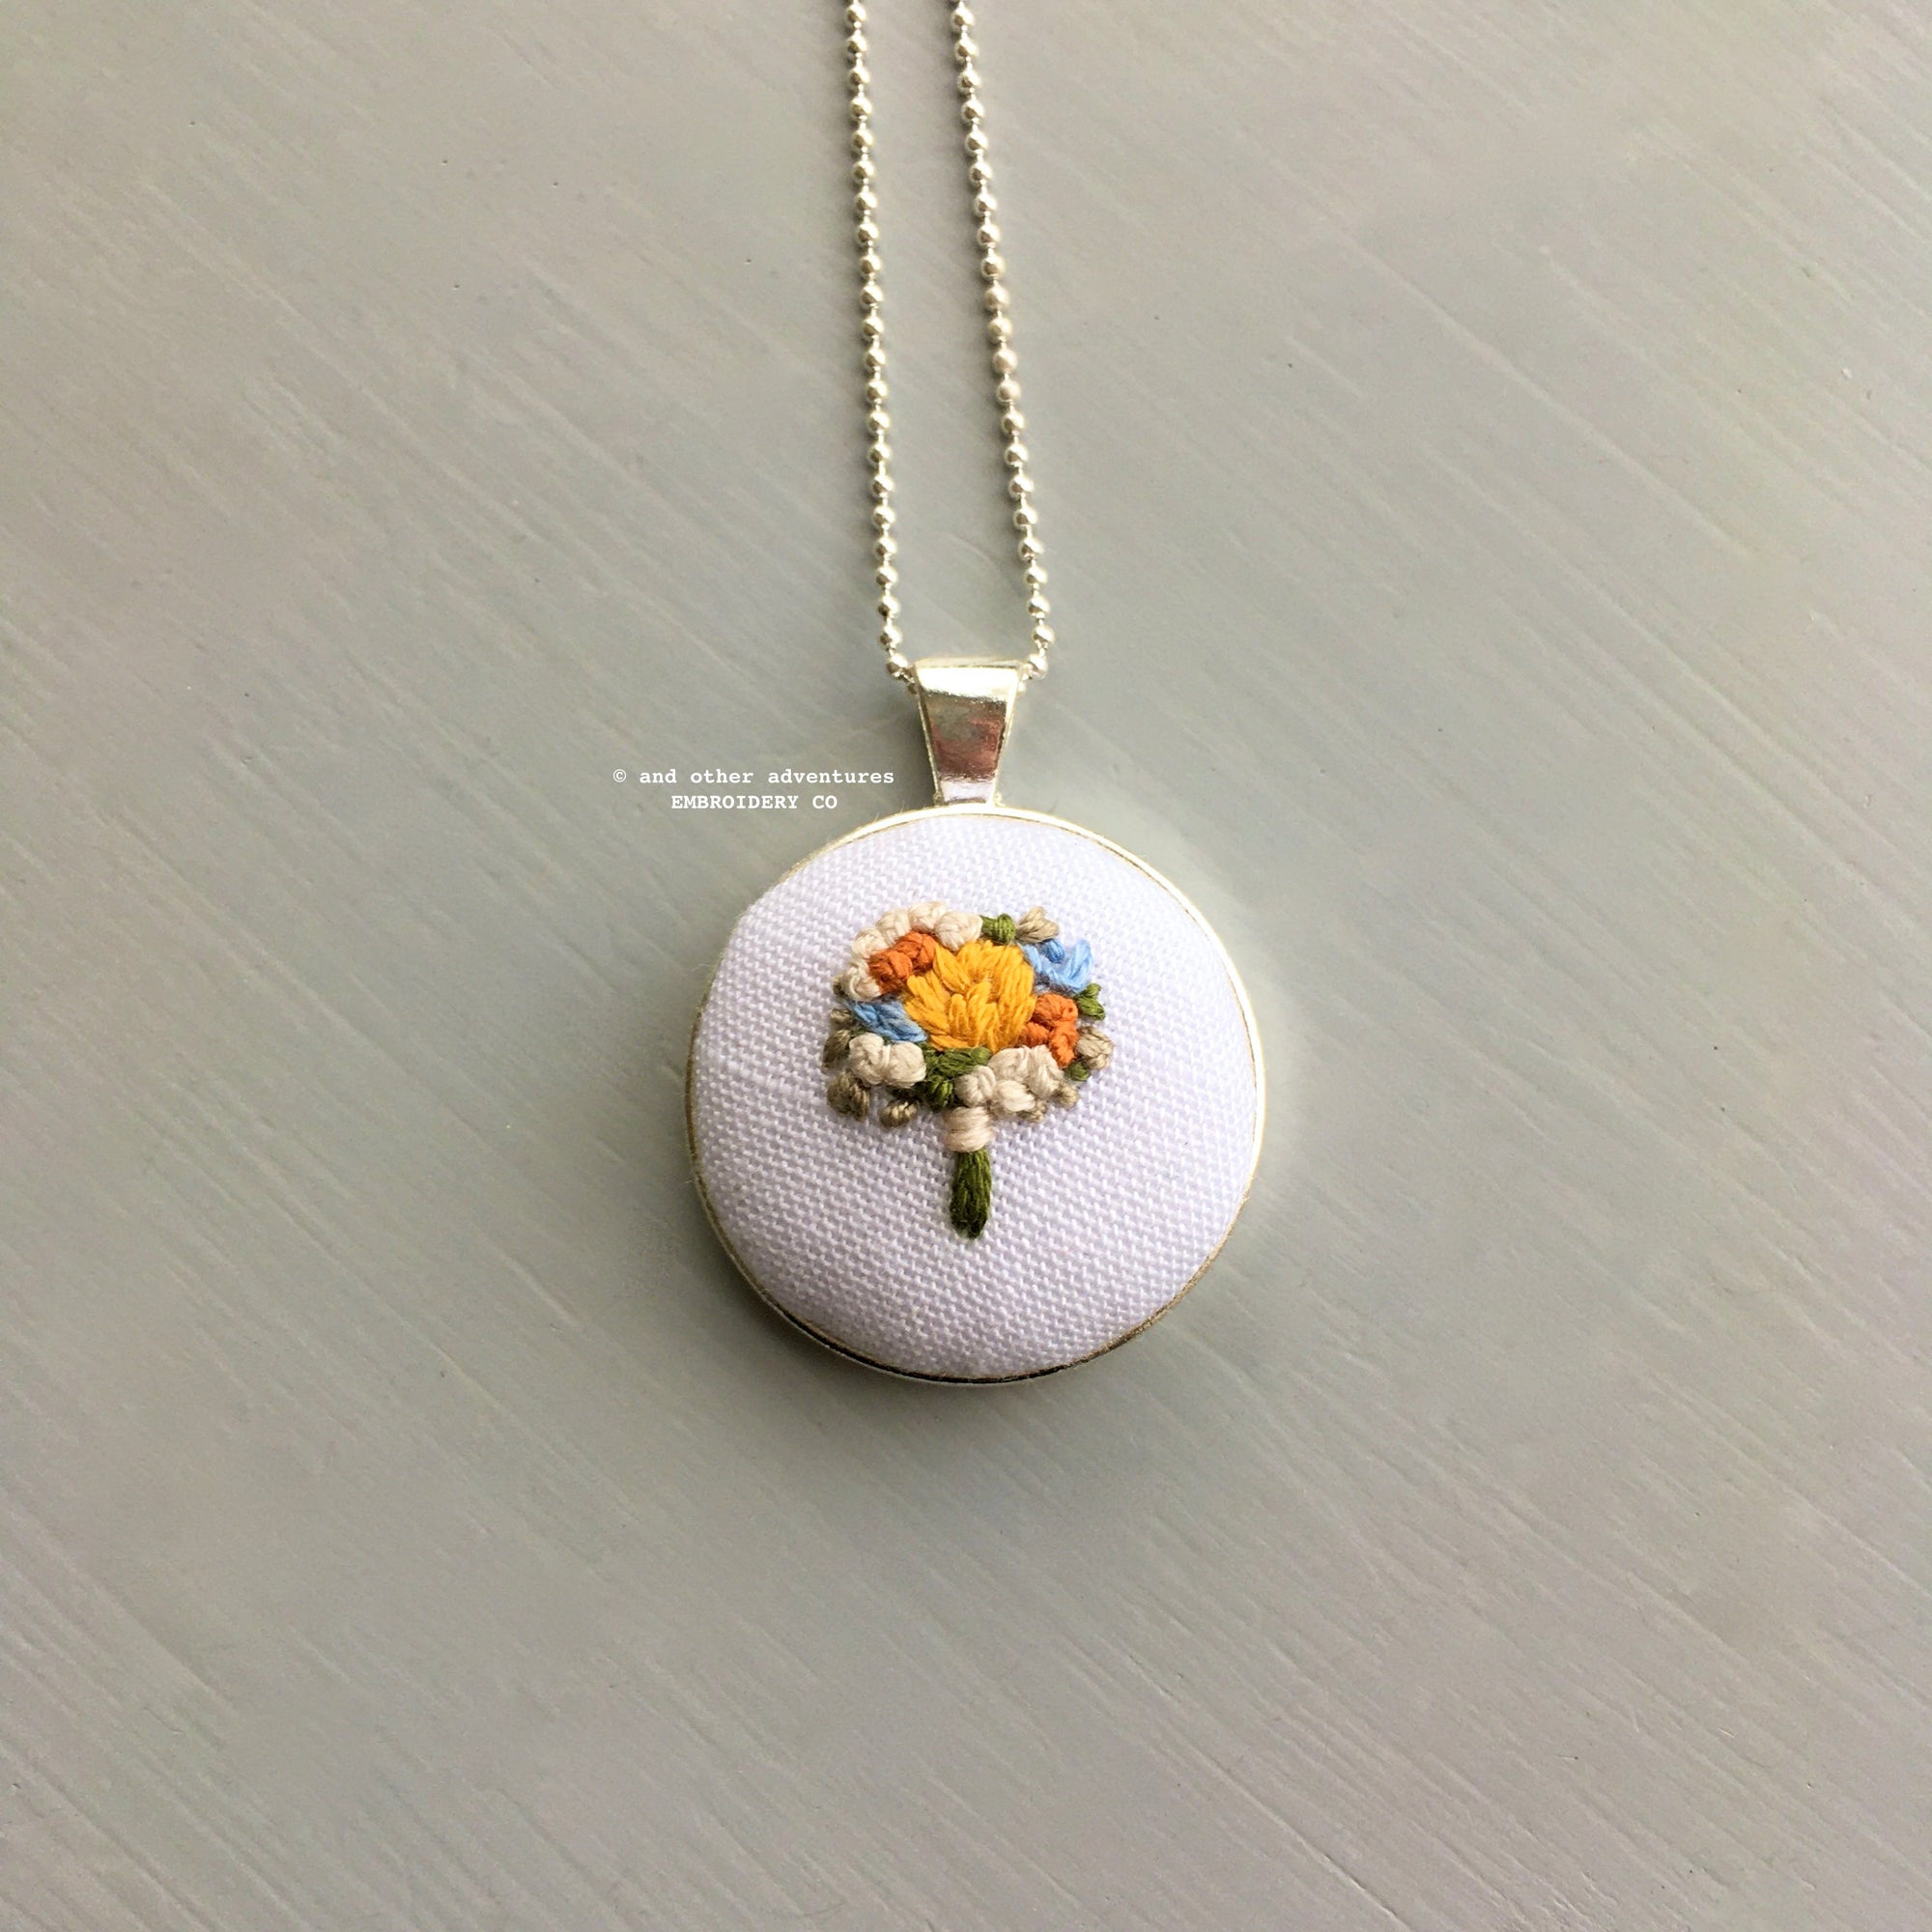 Hand Embroidered Fall Flower Bouquet Silver Necklace | And Other Adventures Embroidery Co